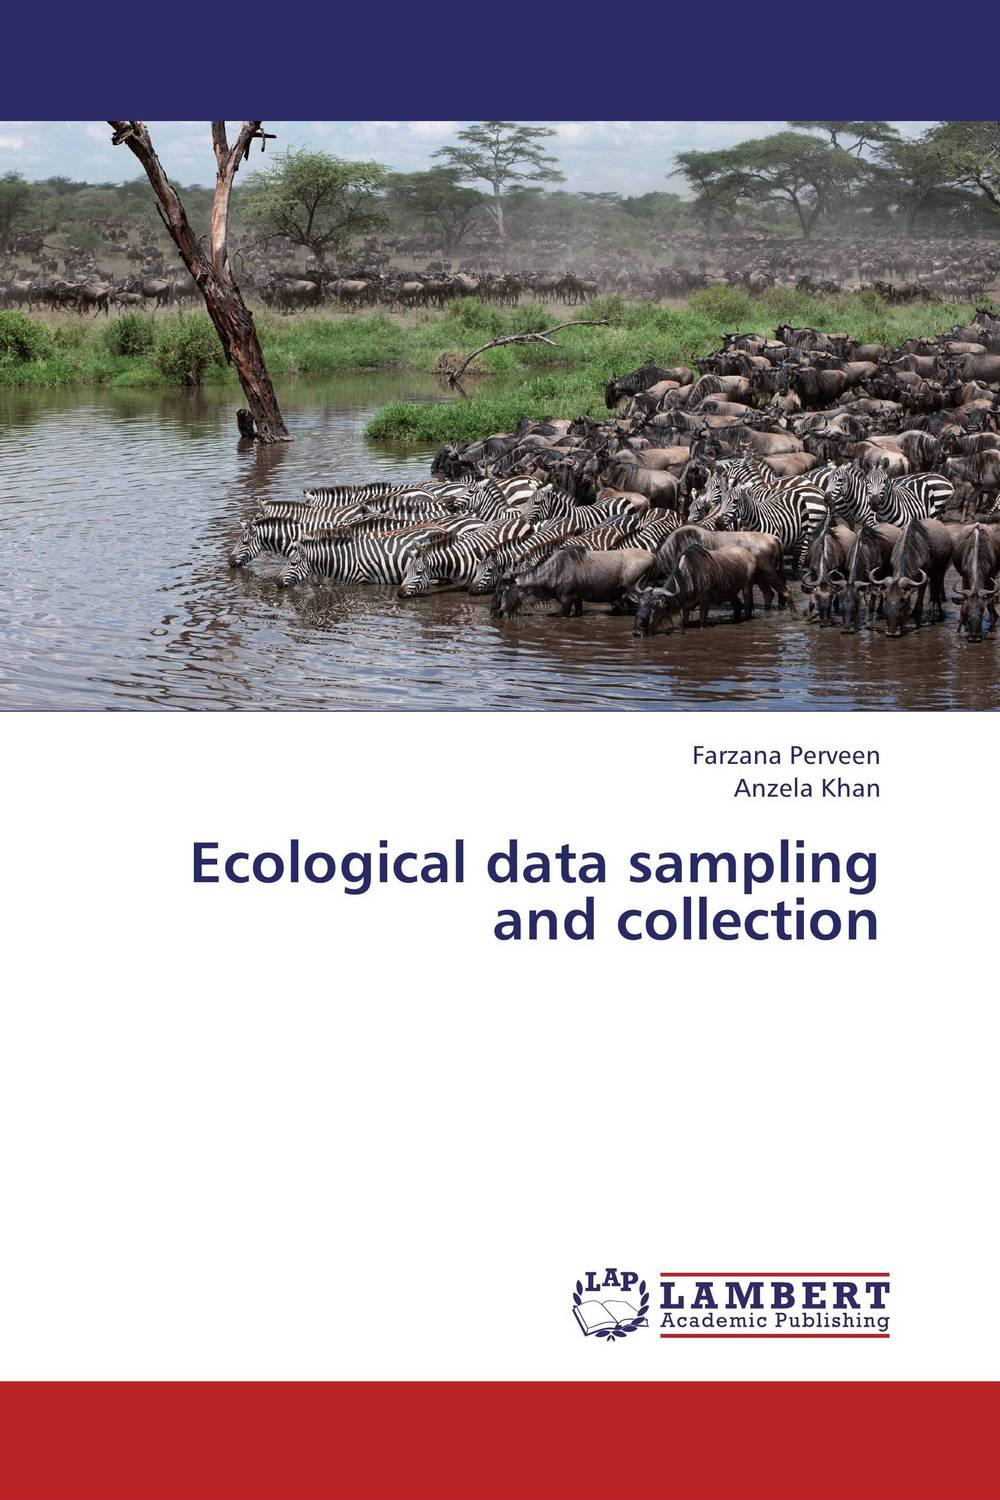 Ecological data sampling and collection belousov a security features of banknotes and other documents methods of authentication manual денежные билеты бланки ценных бумаг и документов